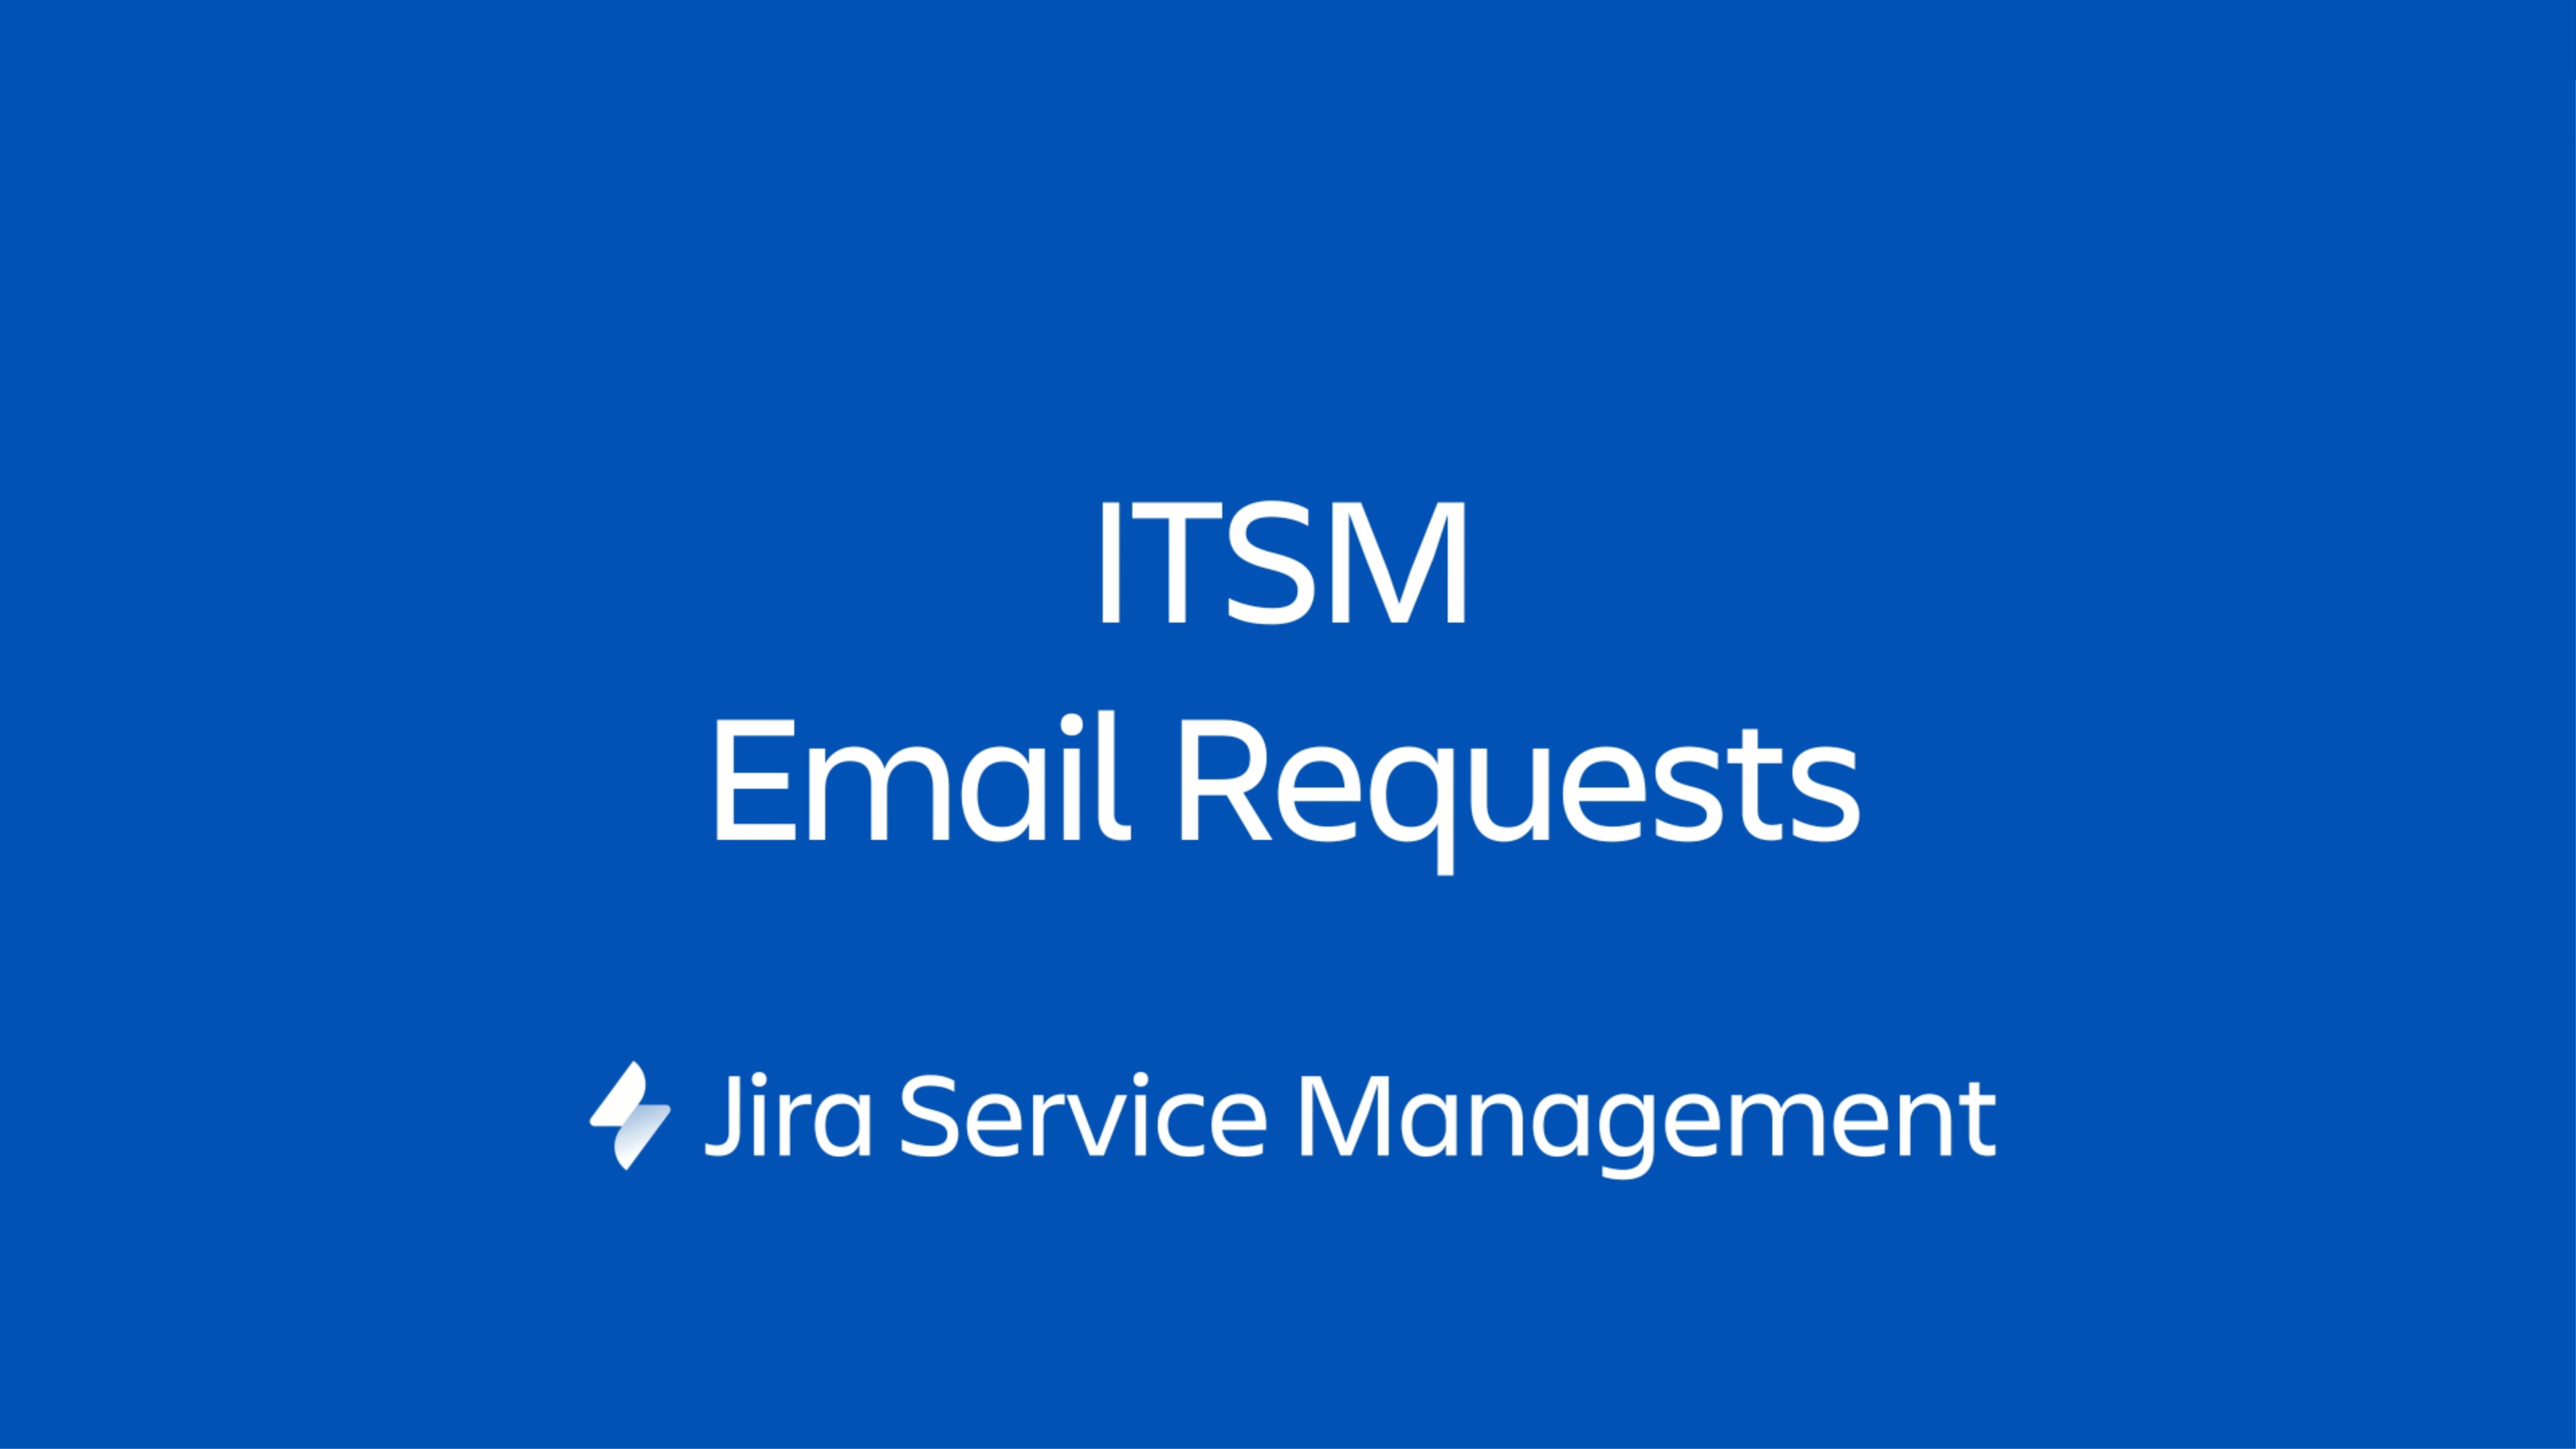 ITSM Email Requests in Jira Service Management